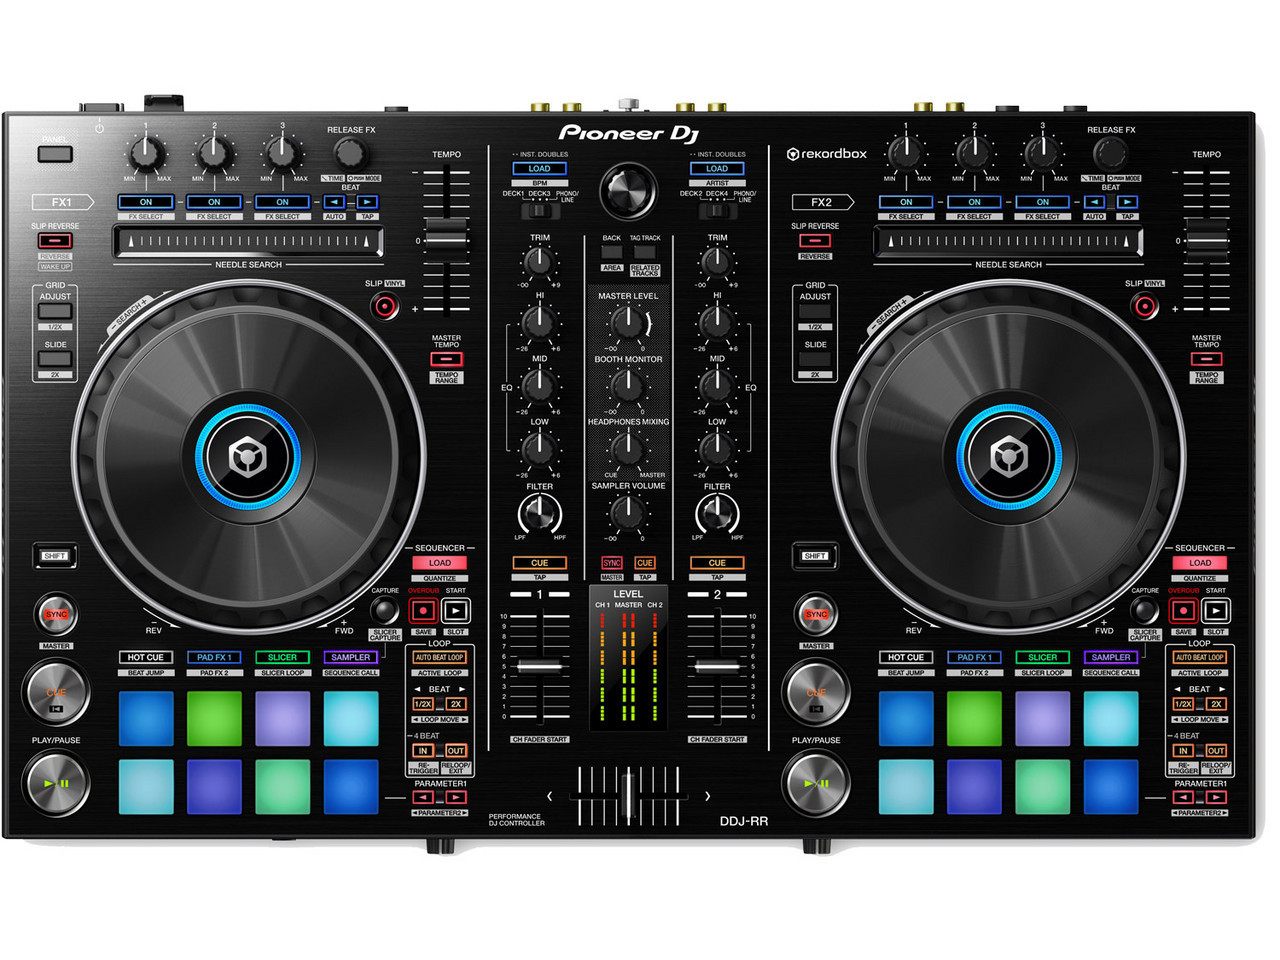 Pioneer Dj DDJ-RR [Price Down!] [REKORDBOX DJ If the corresponding controller! Now possible instant delivery!] []